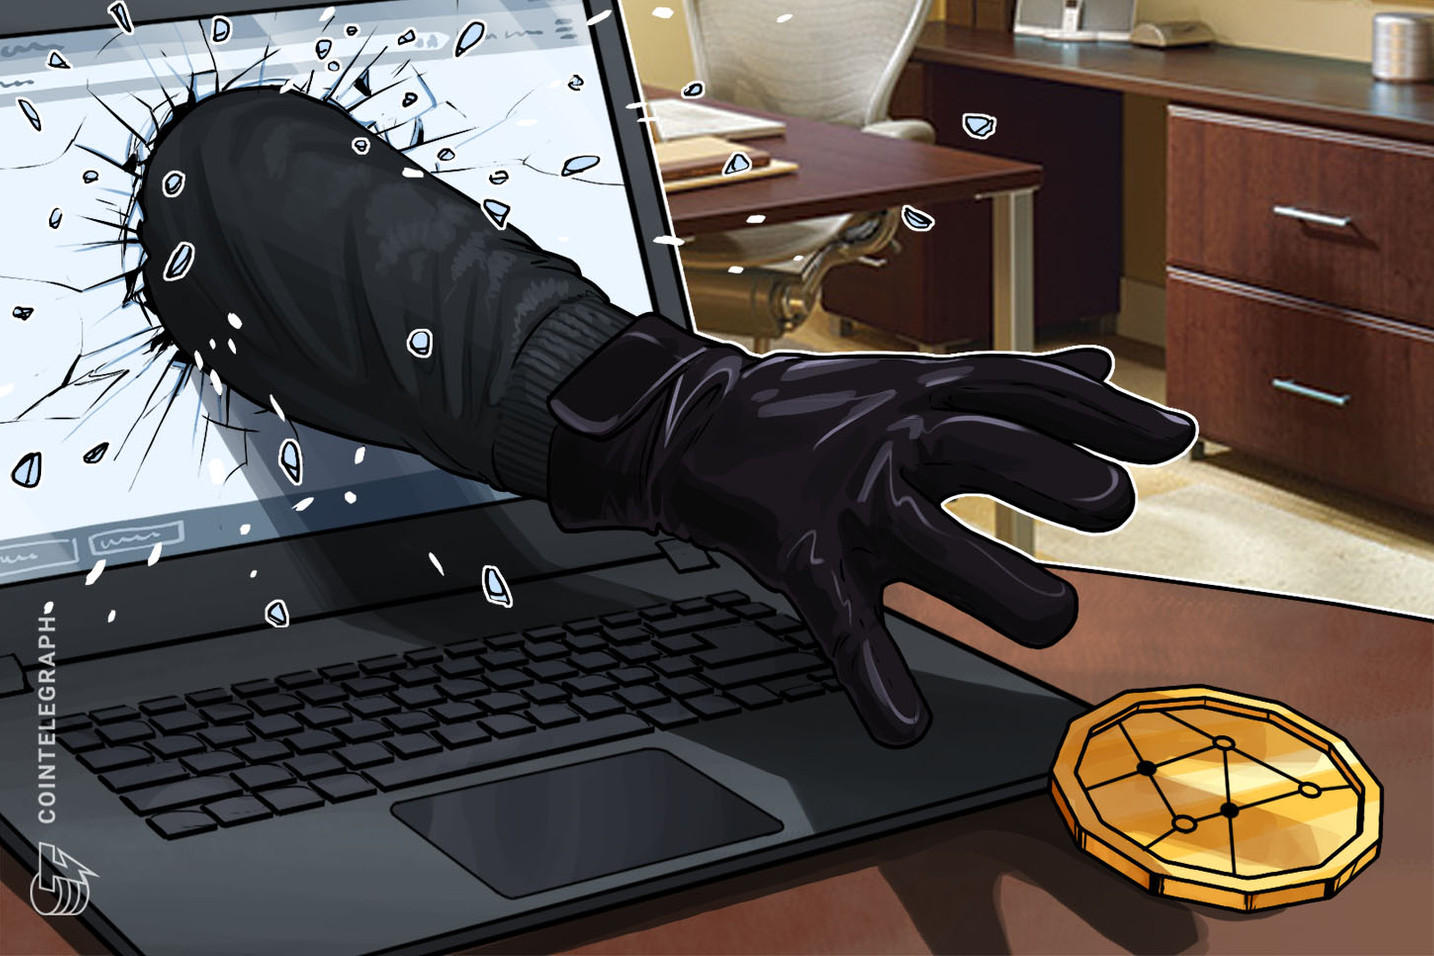 Windows Torrent File Malware Can Swap Out Crypto Addresses, Researcher Warns